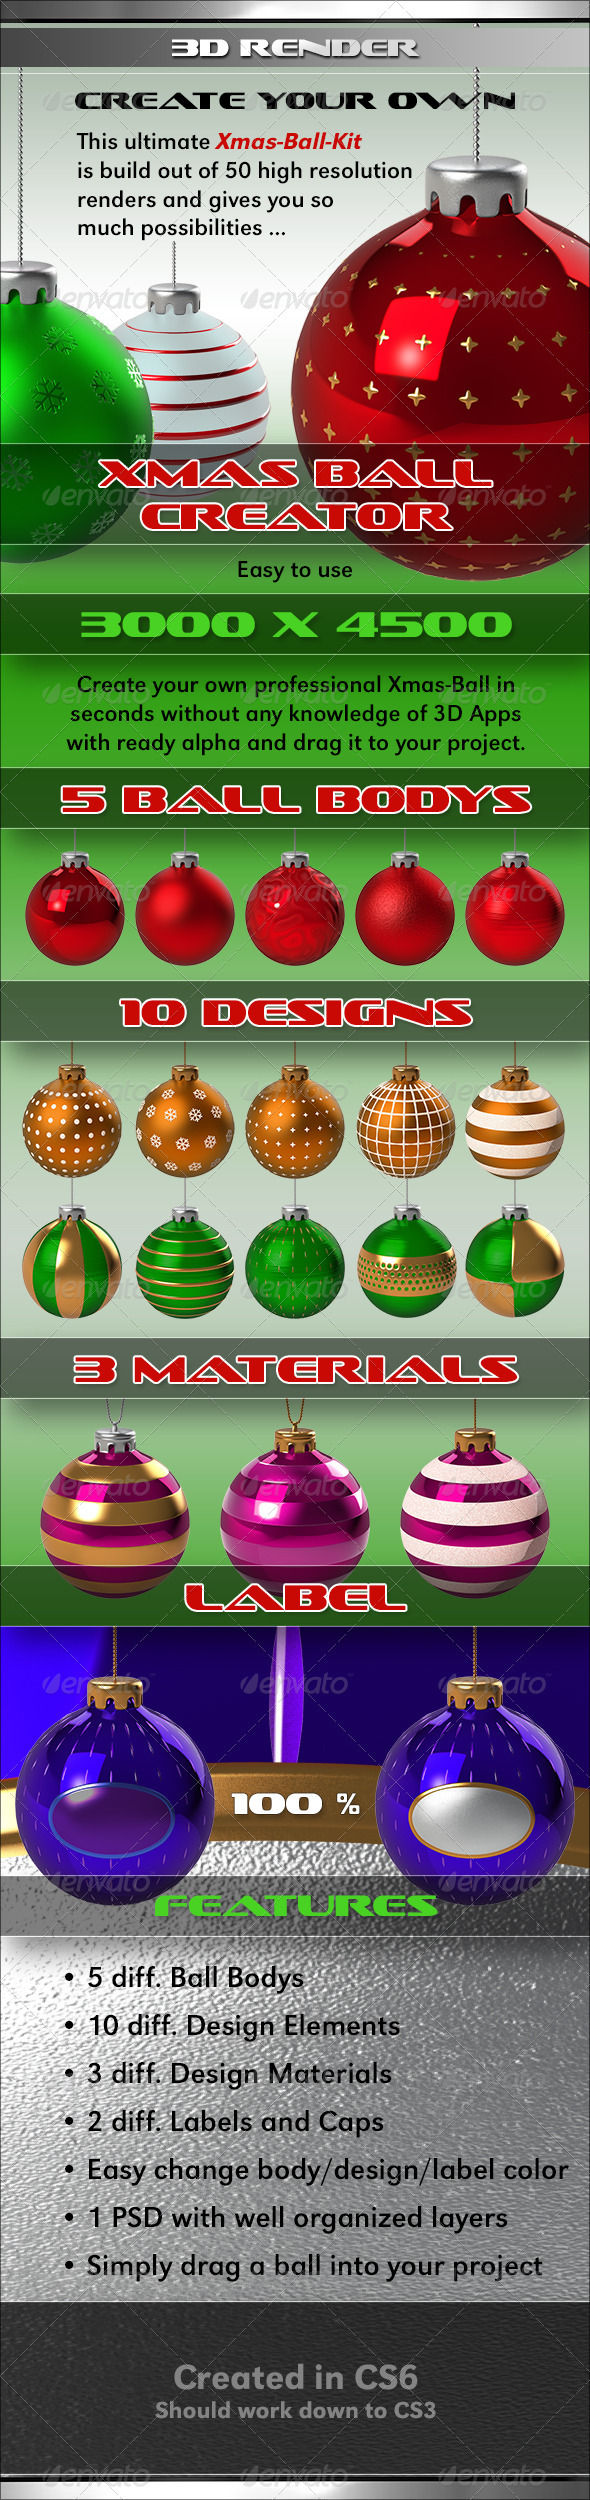 GraphicRiver Xmas Ball Creator 3342266